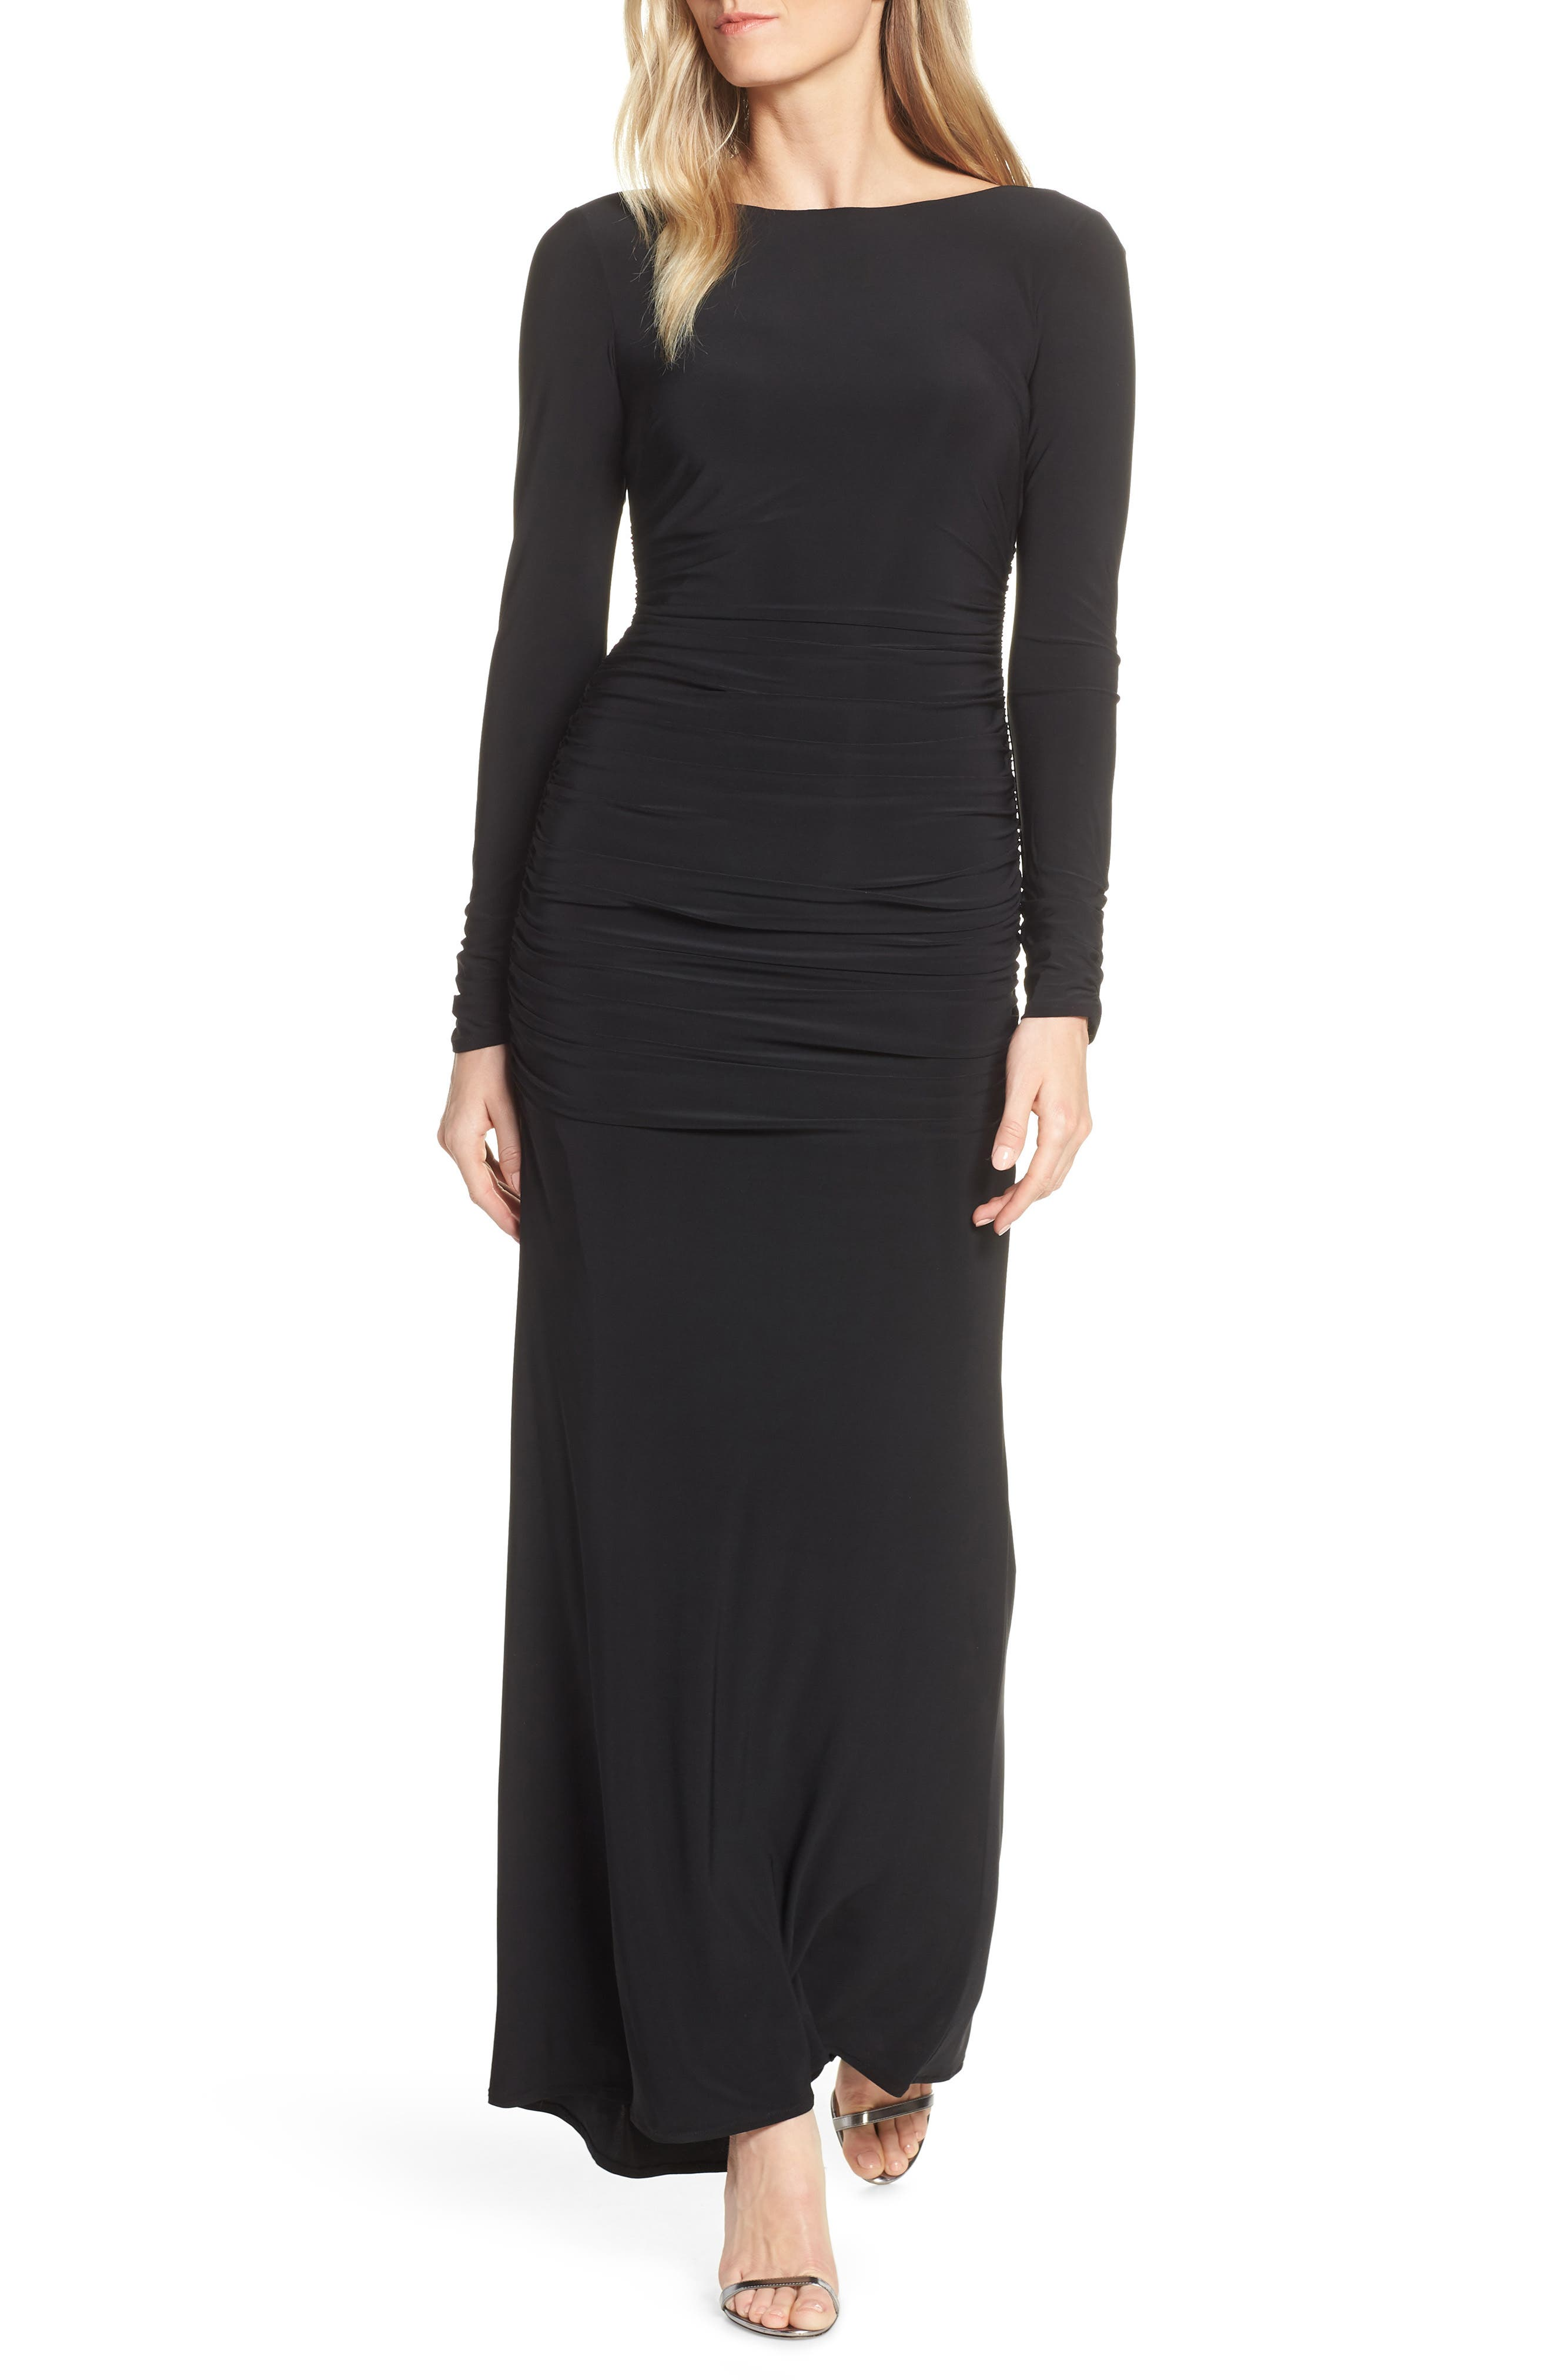 Vince Camuto Ruched Evening Dress, Black